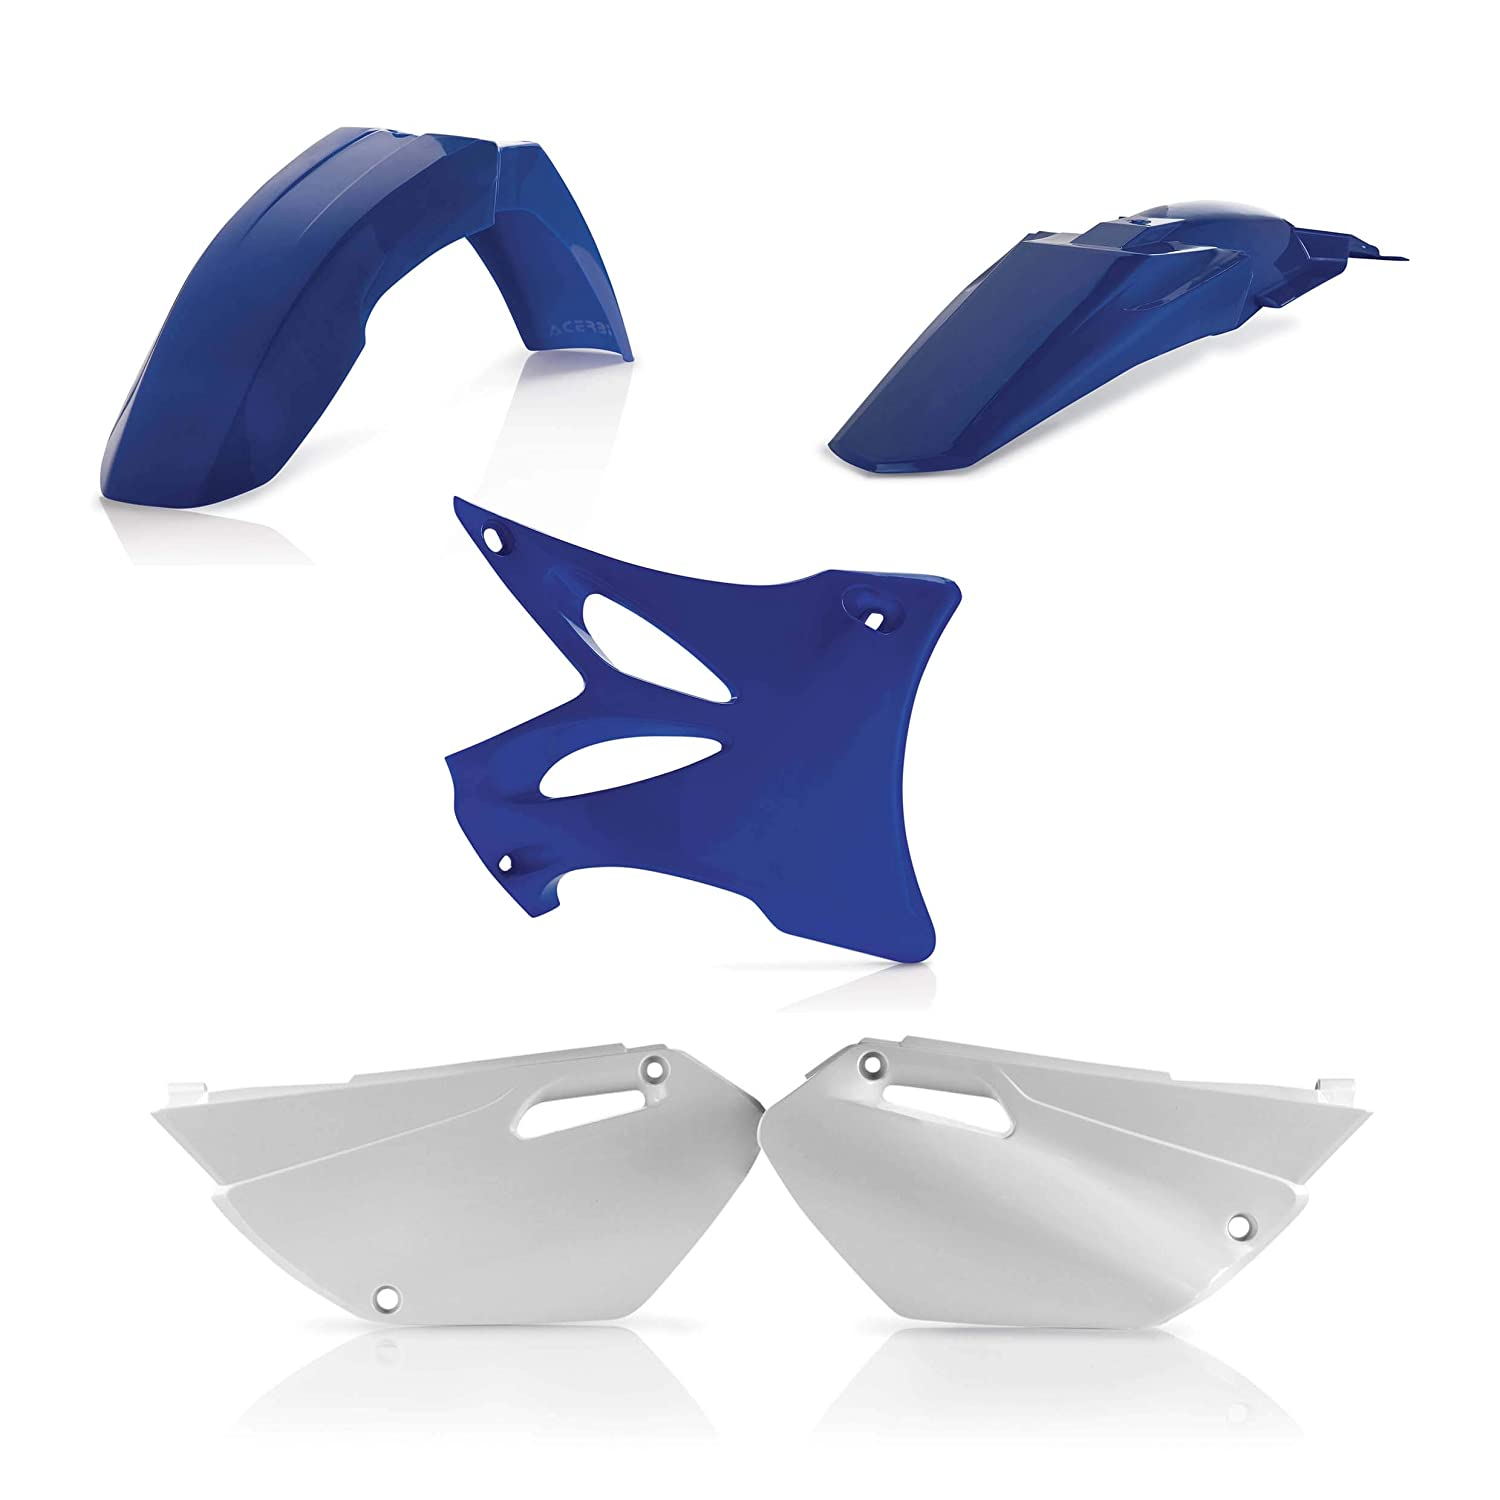 02-14 YAMAHA YZ85: Acerbis Plastic Kit (OEM Colors) 0007512.553.002